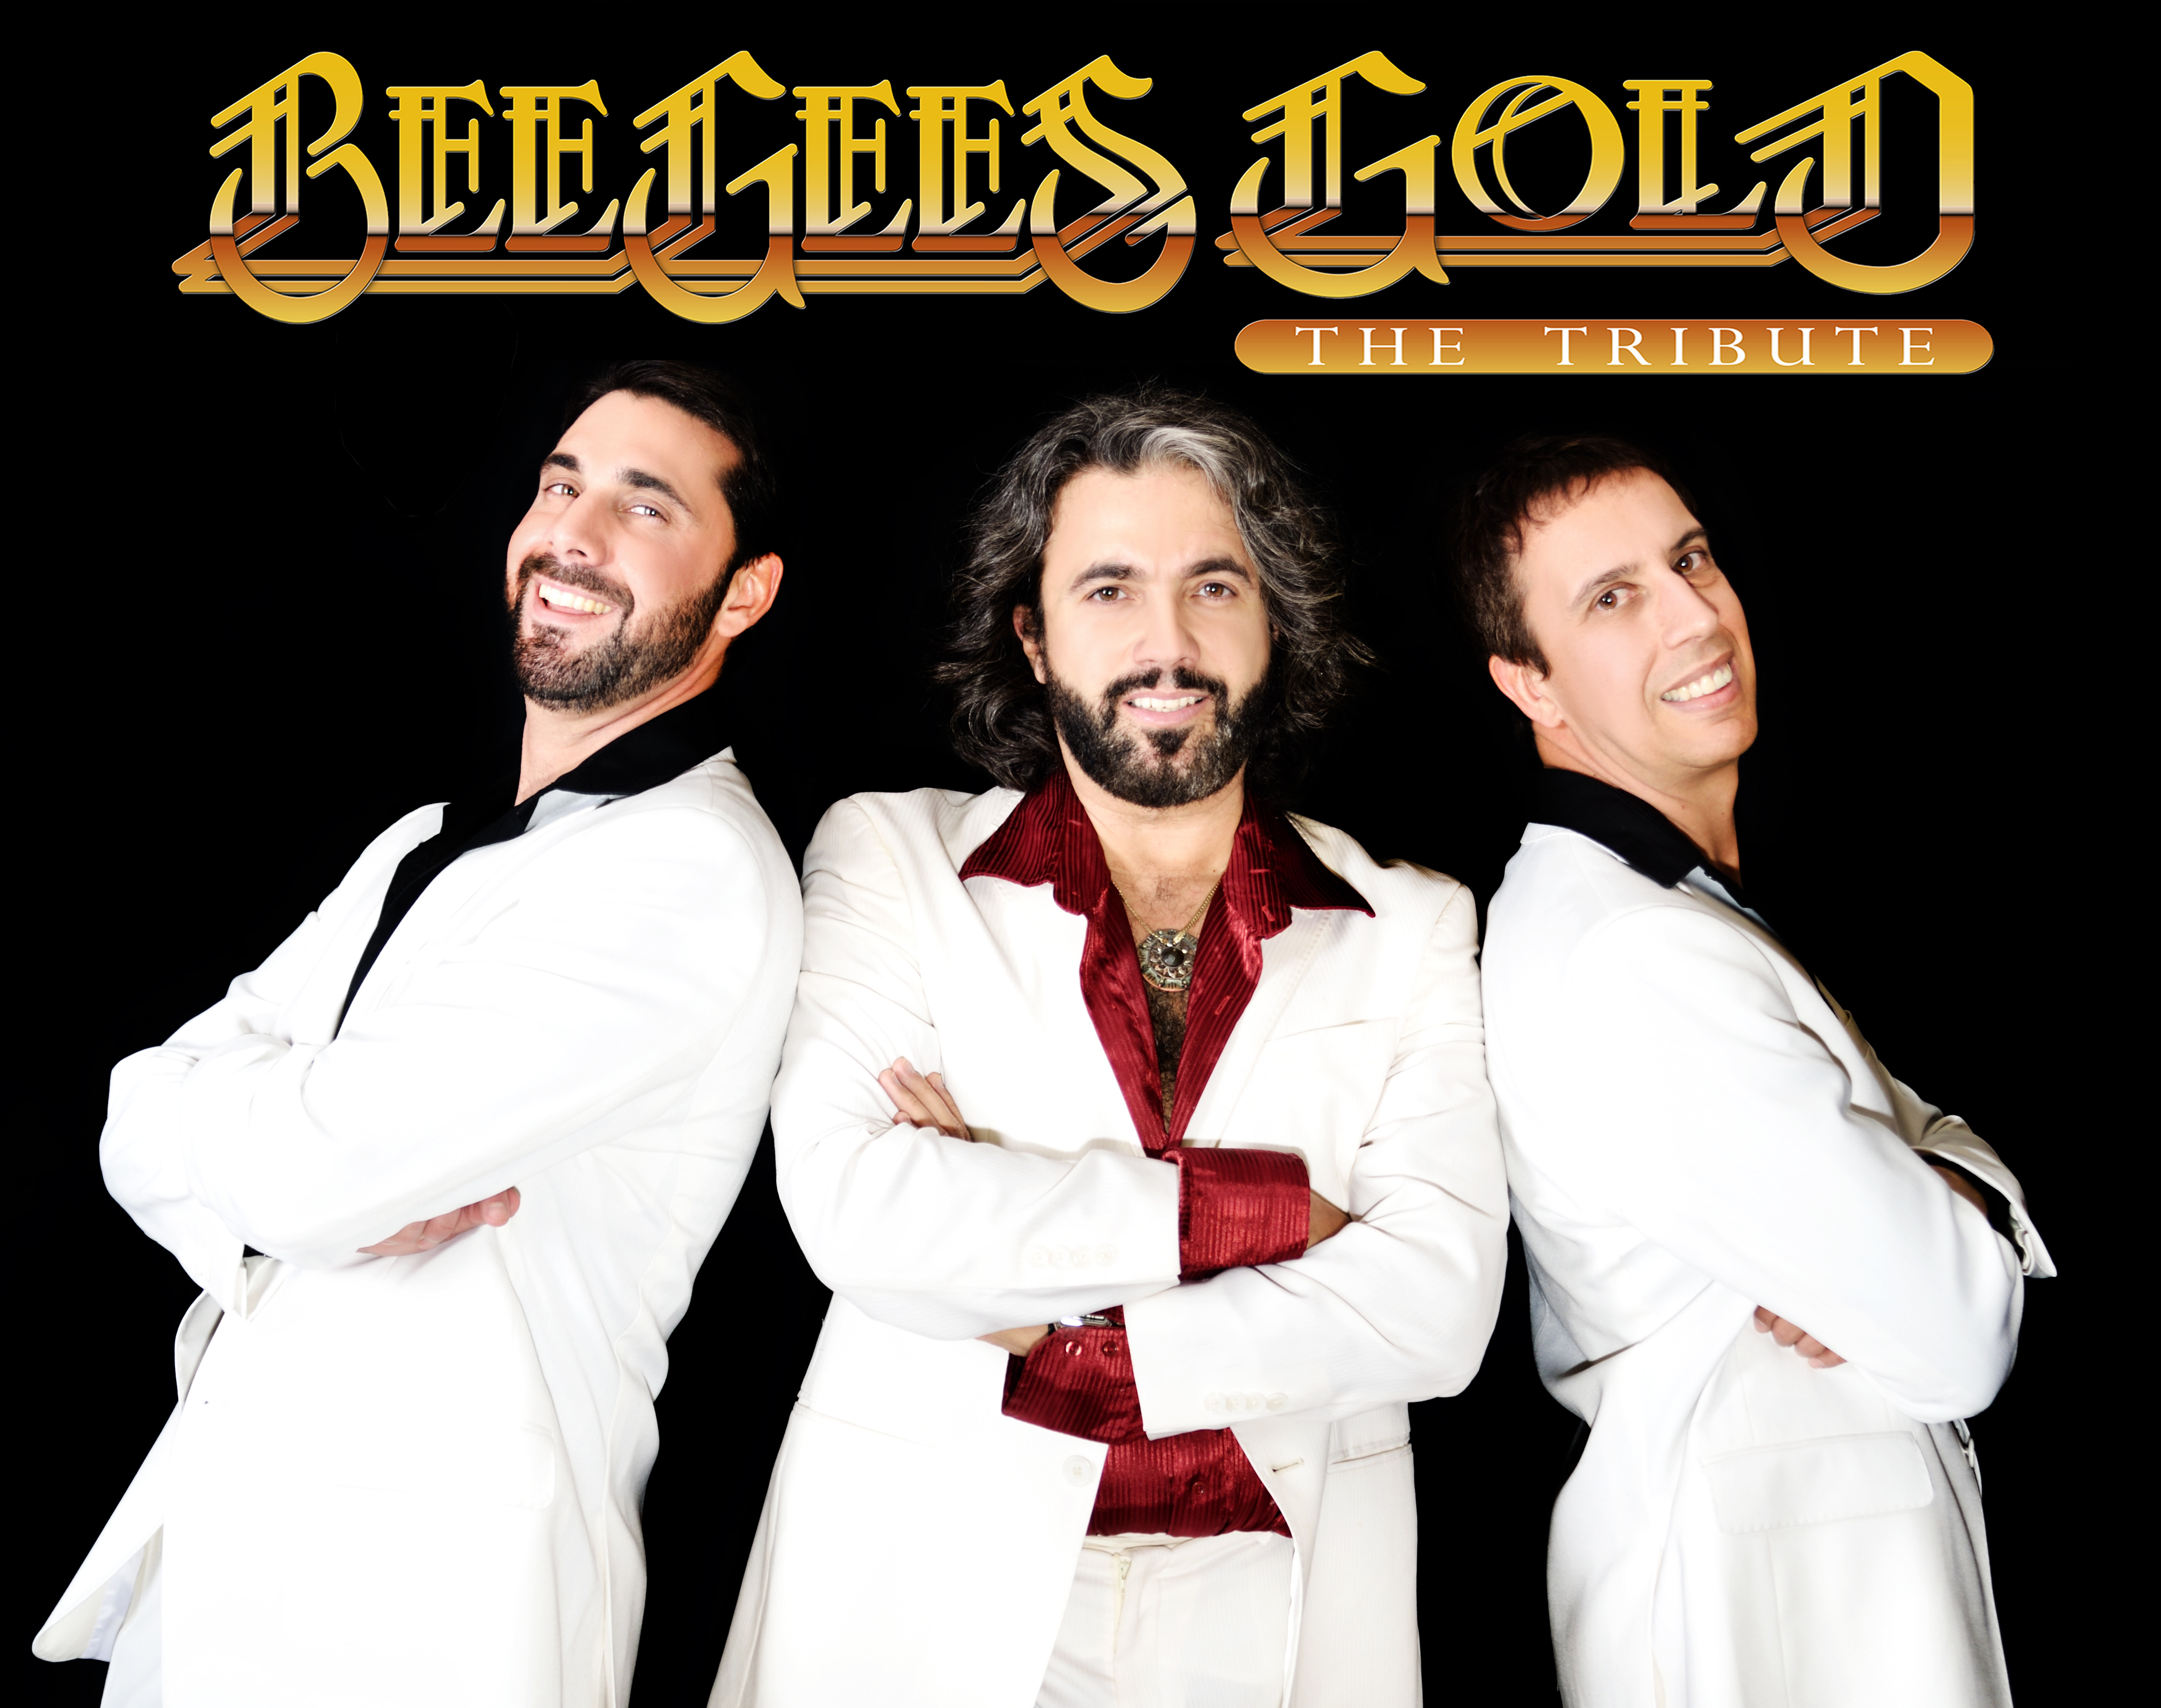 Bee Gees 'Stayin' Alive' at Uptown! on Jan. 26